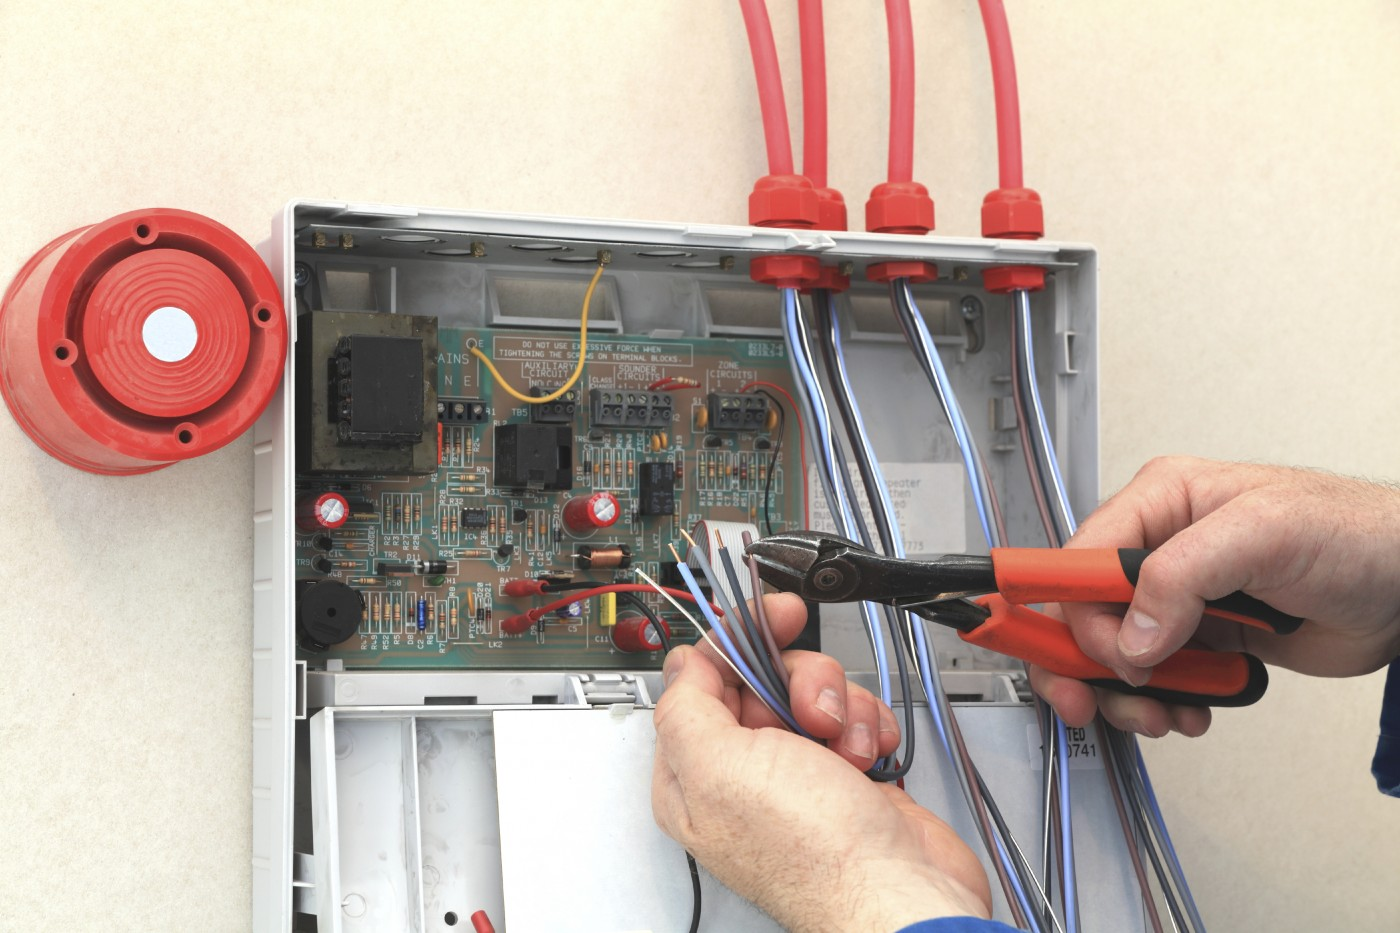 Wet Pipe Sprinkler Systems as well Fire alarm system besides Hot Water Recirculator How It Works in addition Your Duct System And Smoke Detection in addition From Kw To Mw System Design Considerations. on commercial fire alarm wiring